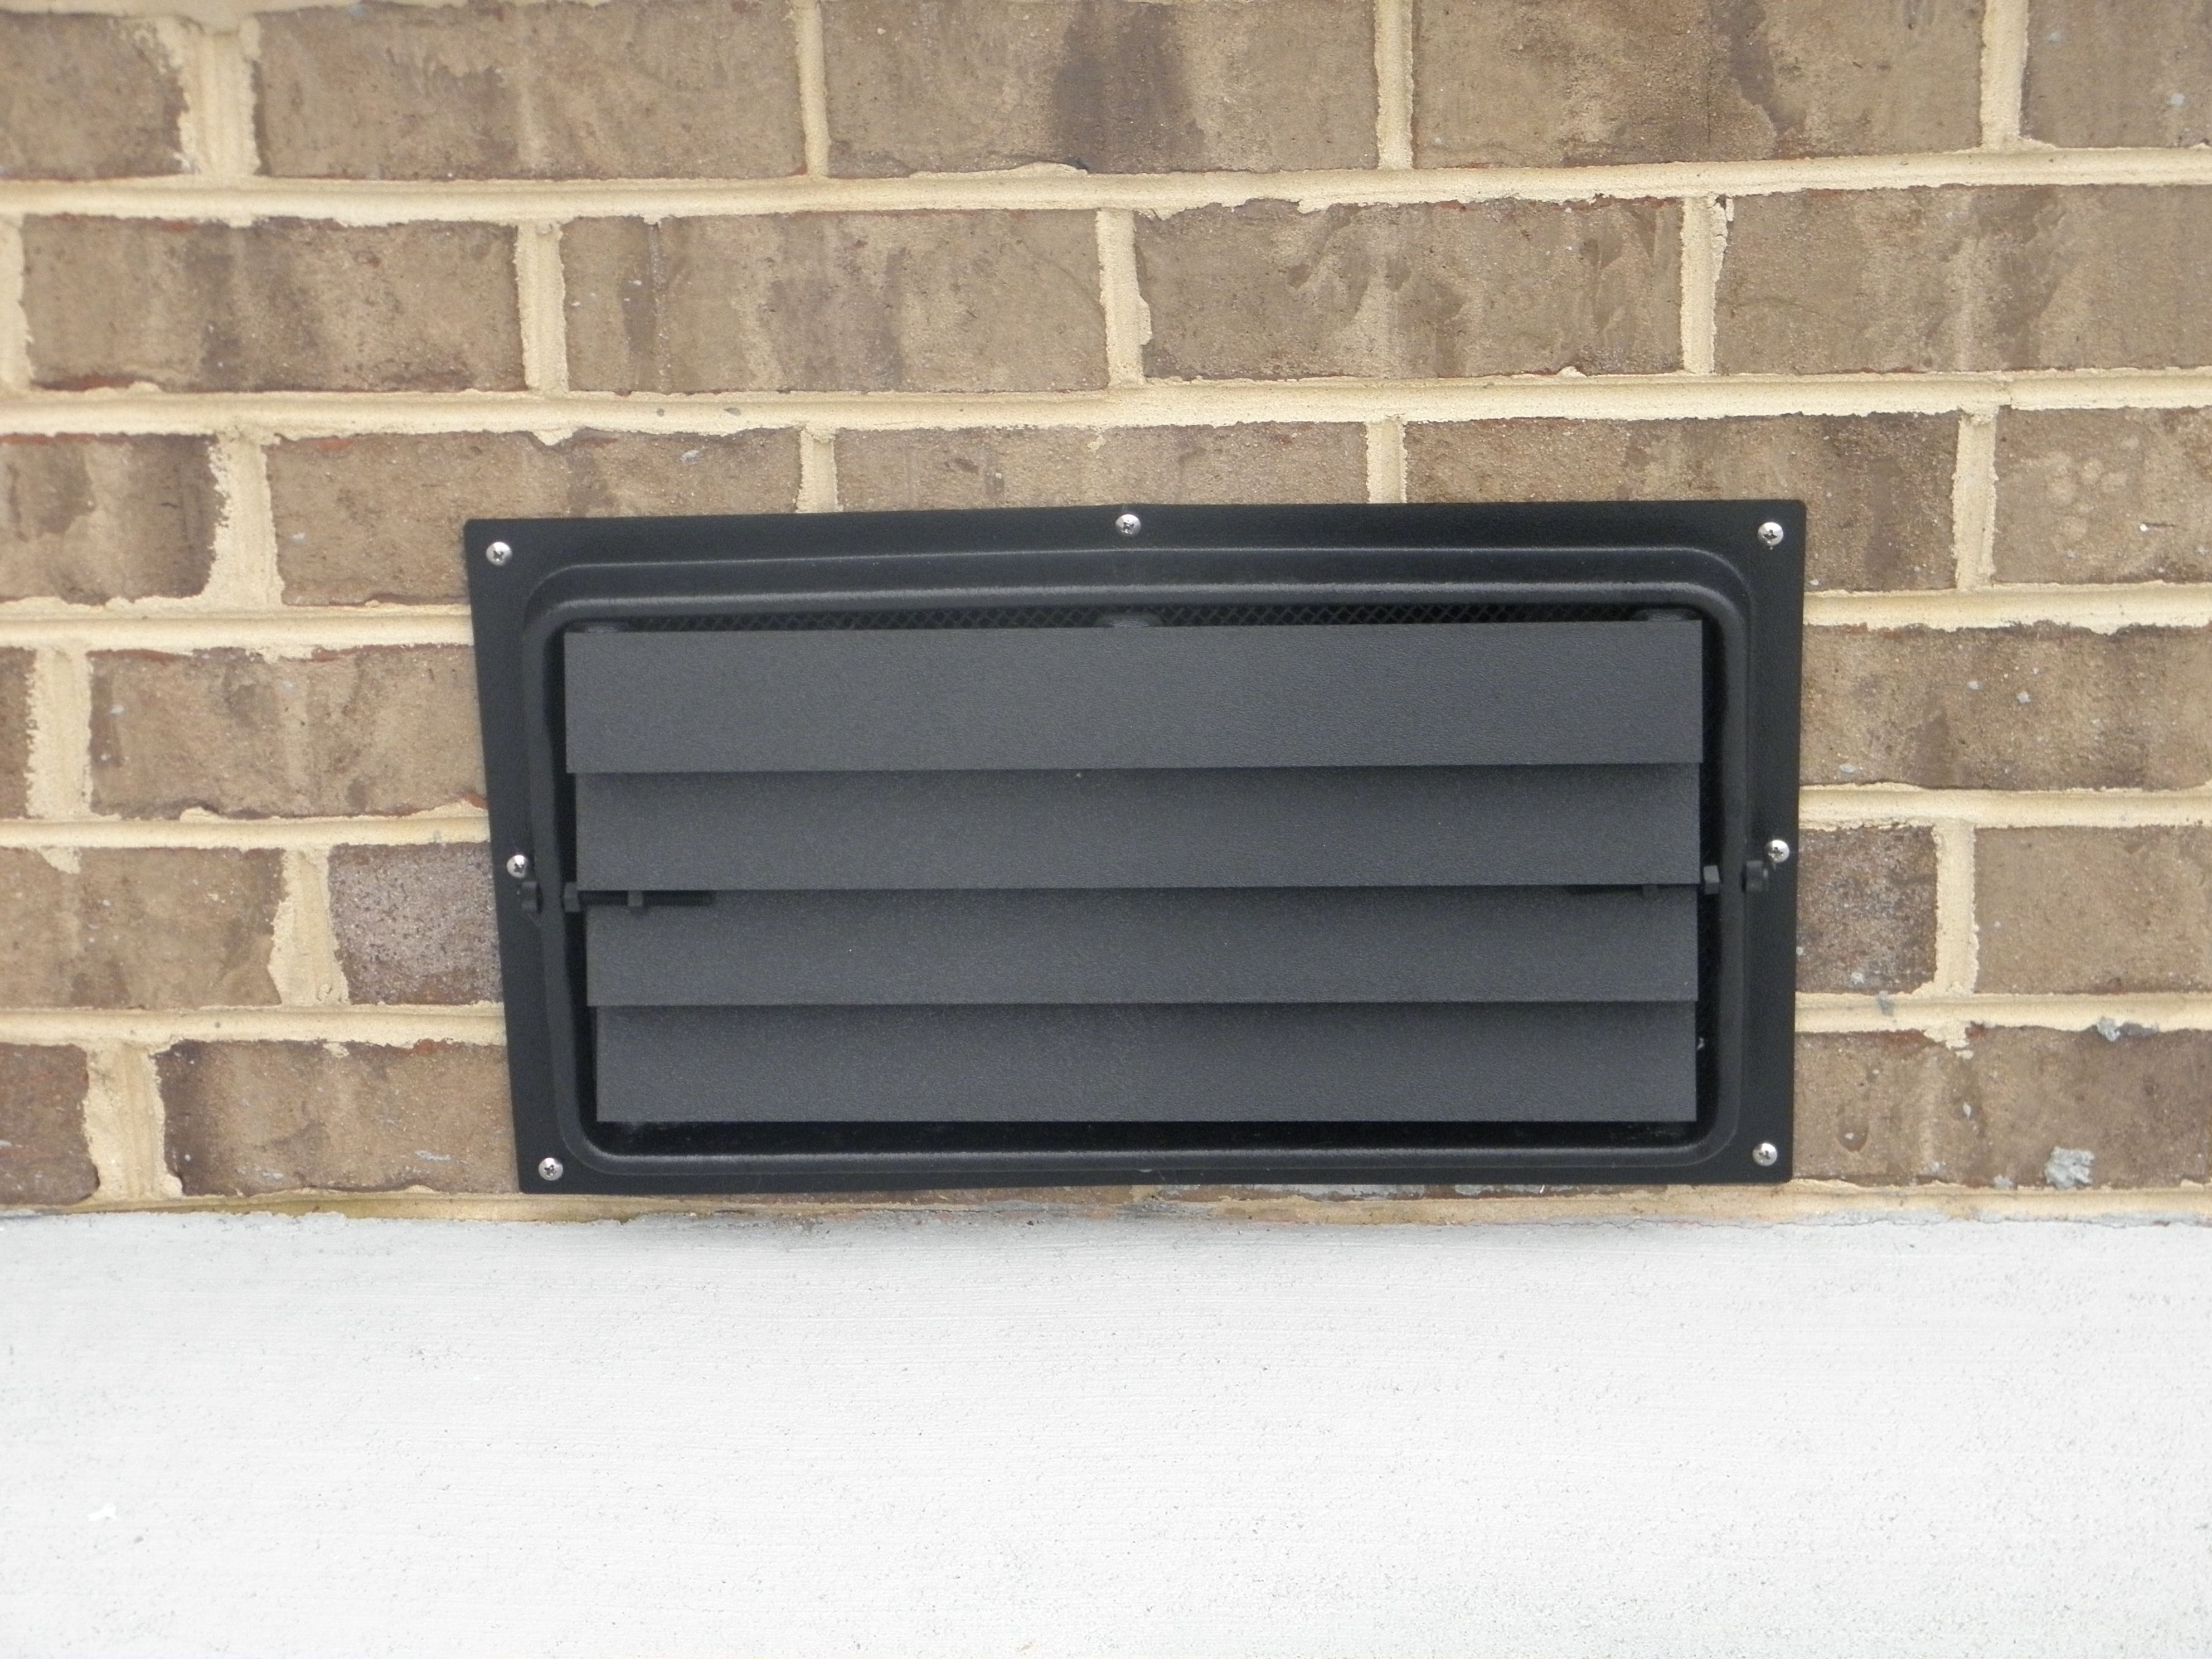 This Is Our 8x16 Flood Vent Currently Installed On A Brick Foundation Flood Vents Crawl Space Vents Flood